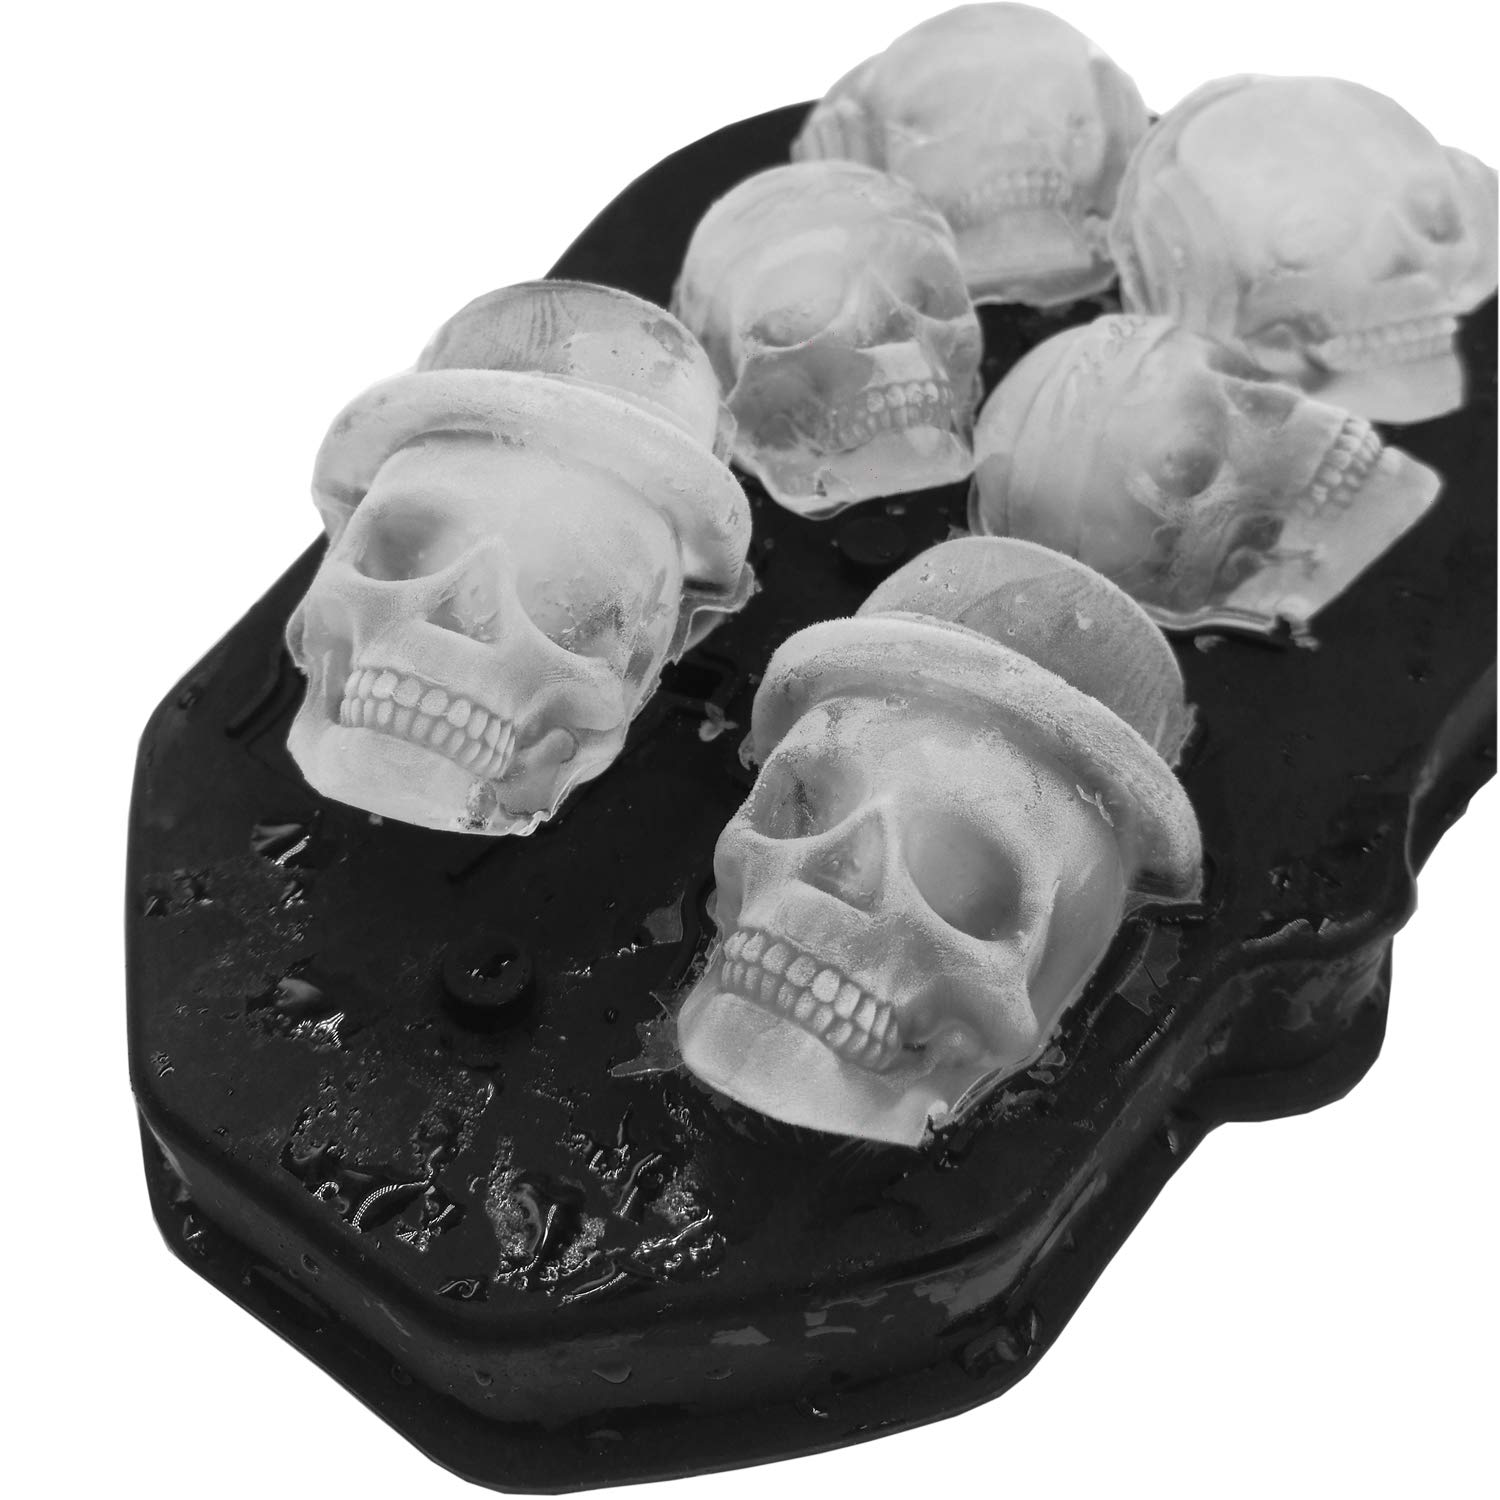 3D Ice Skull Mold-Flexible Food Grade Silicone Ice Cube Trays, Best for Whiskey, Cocktails and Vodka, Perfect Ice Cube Maker for Party and Christmas Eve Gifts, Black